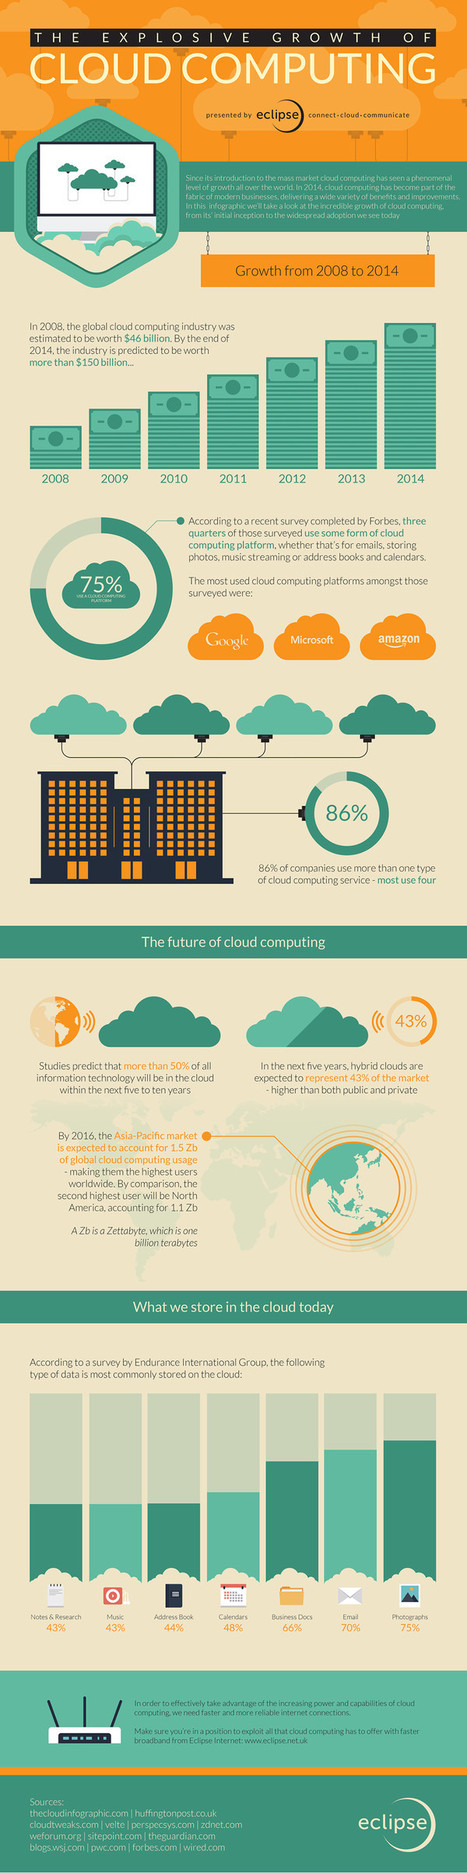 The Explosive Growth of Cloud Computing | Social Media Today | Social media DAILY NEWS | Scoop.it